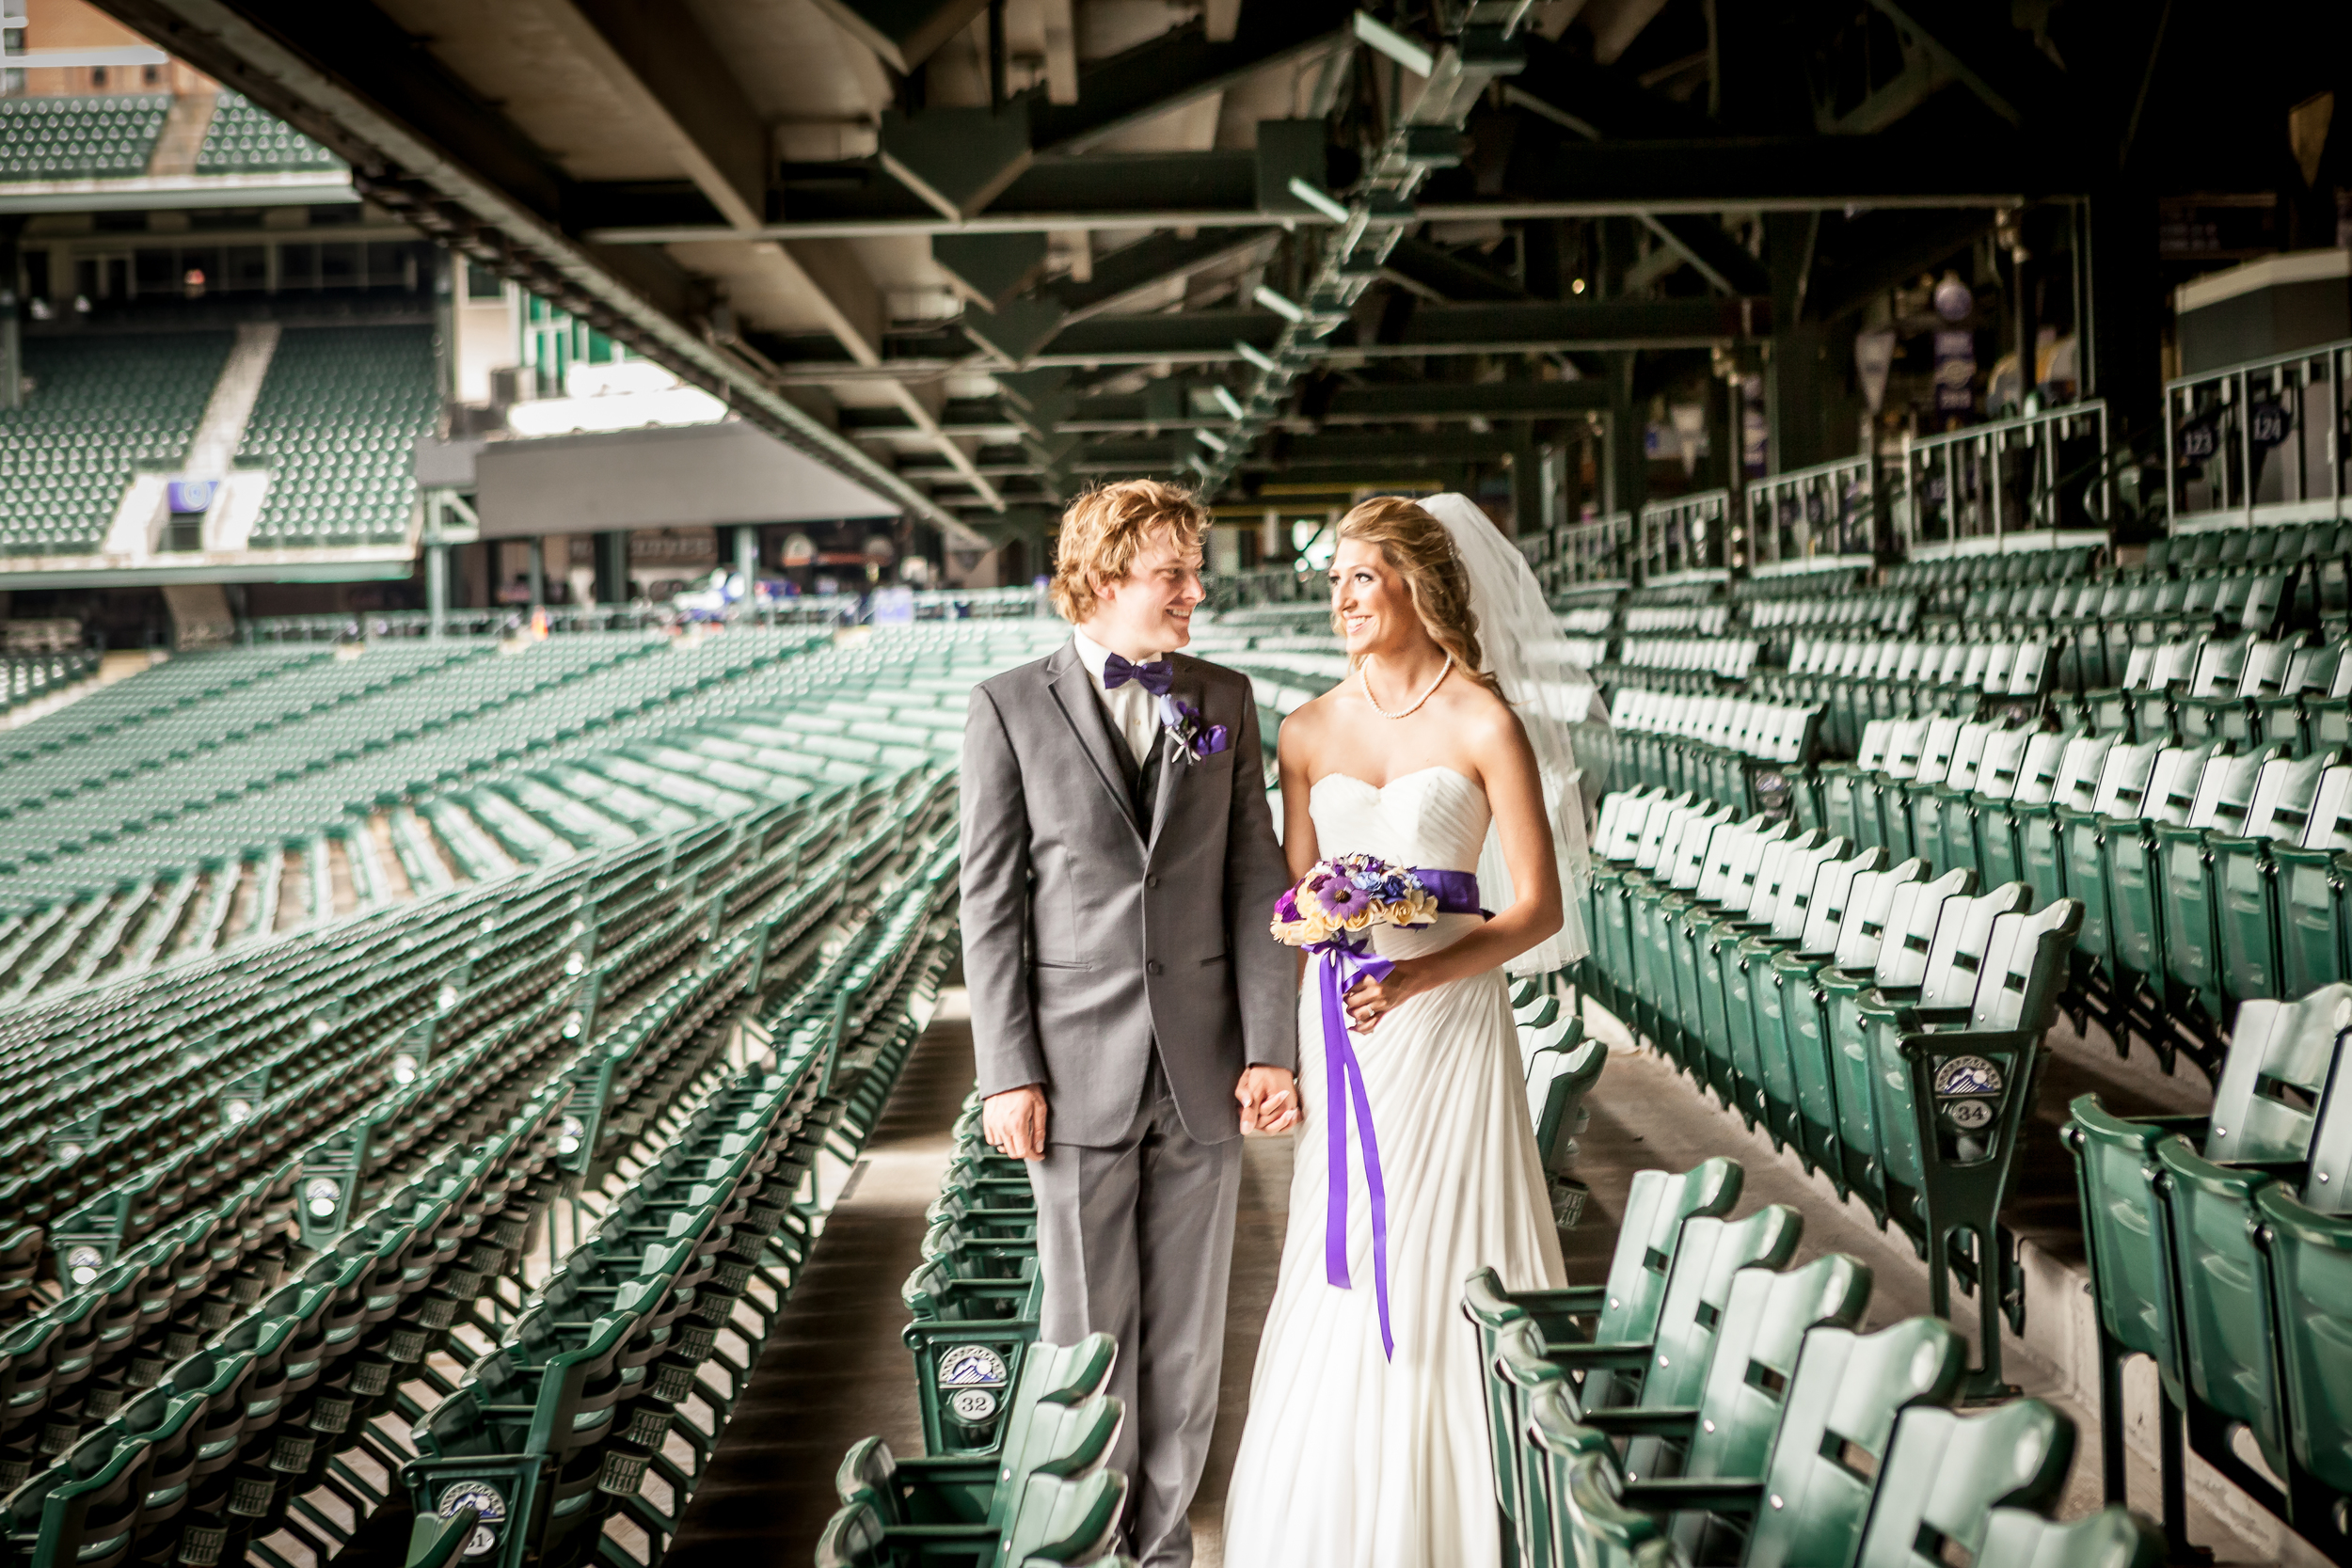 Aren't these two lovebirds just the cutest? From their wedding June 2014 at Coors Field.